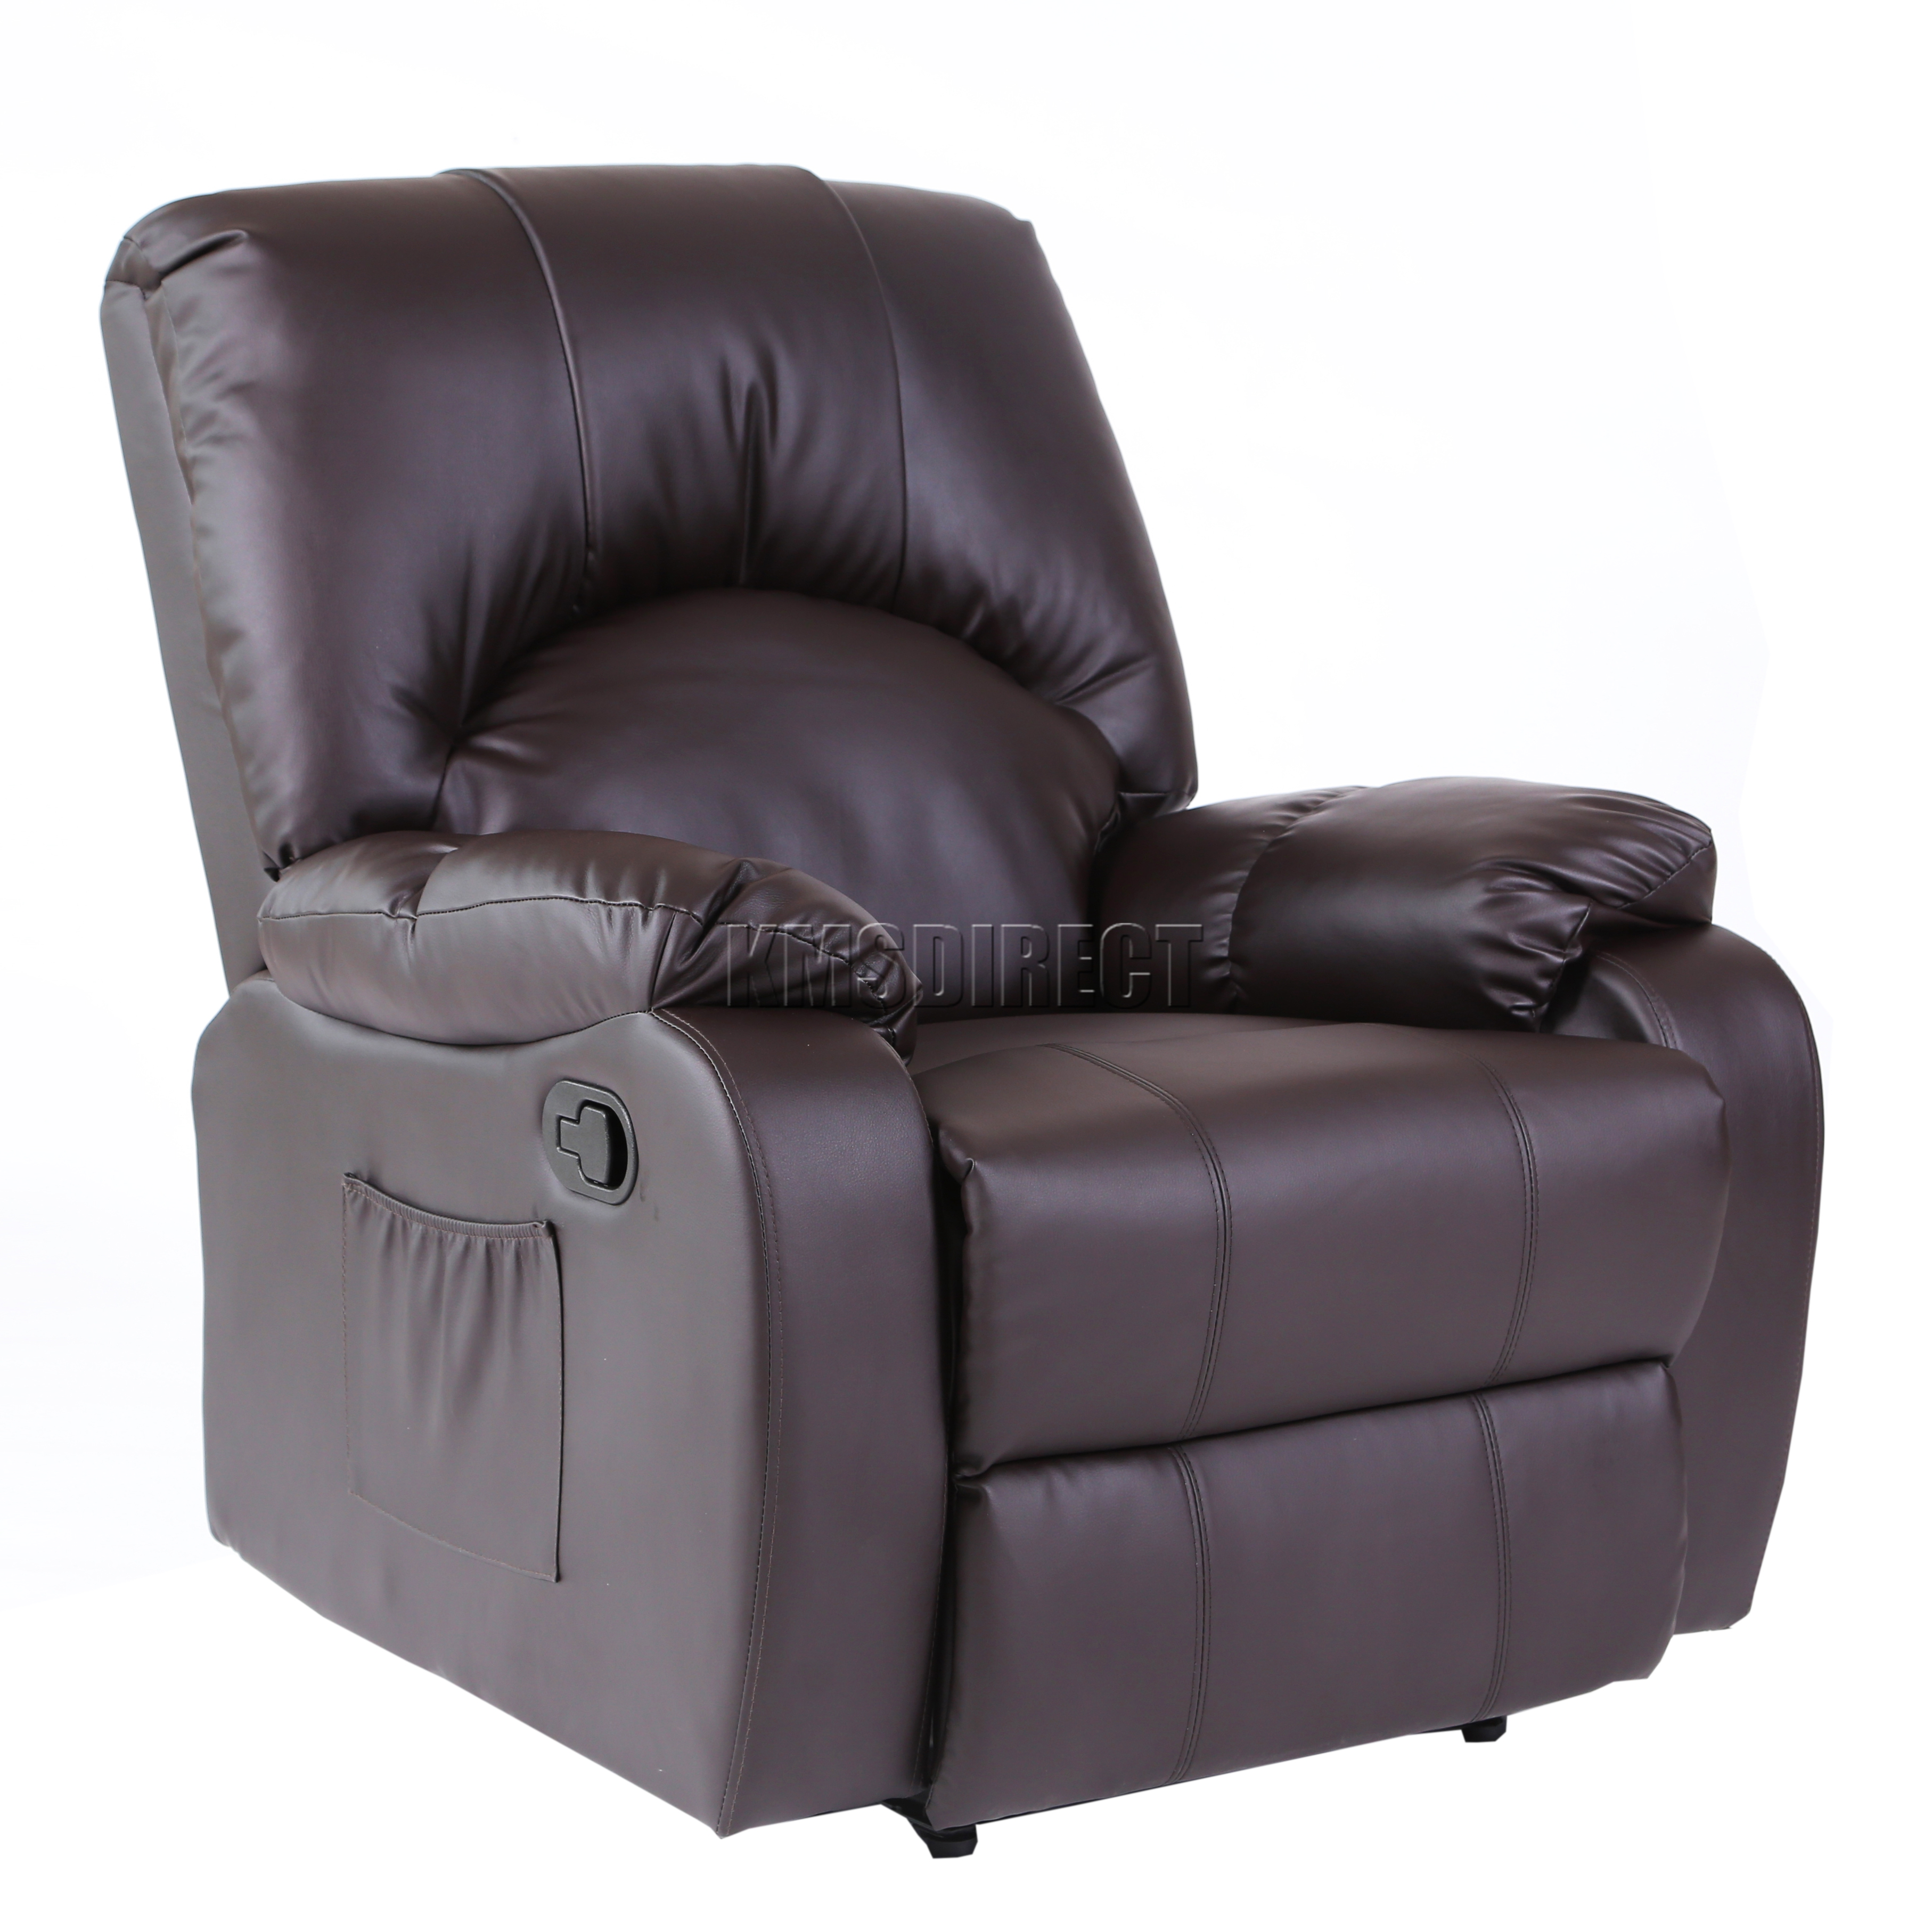 reclining massage sofa traditional set images foxhunter leather cinema recliner chair